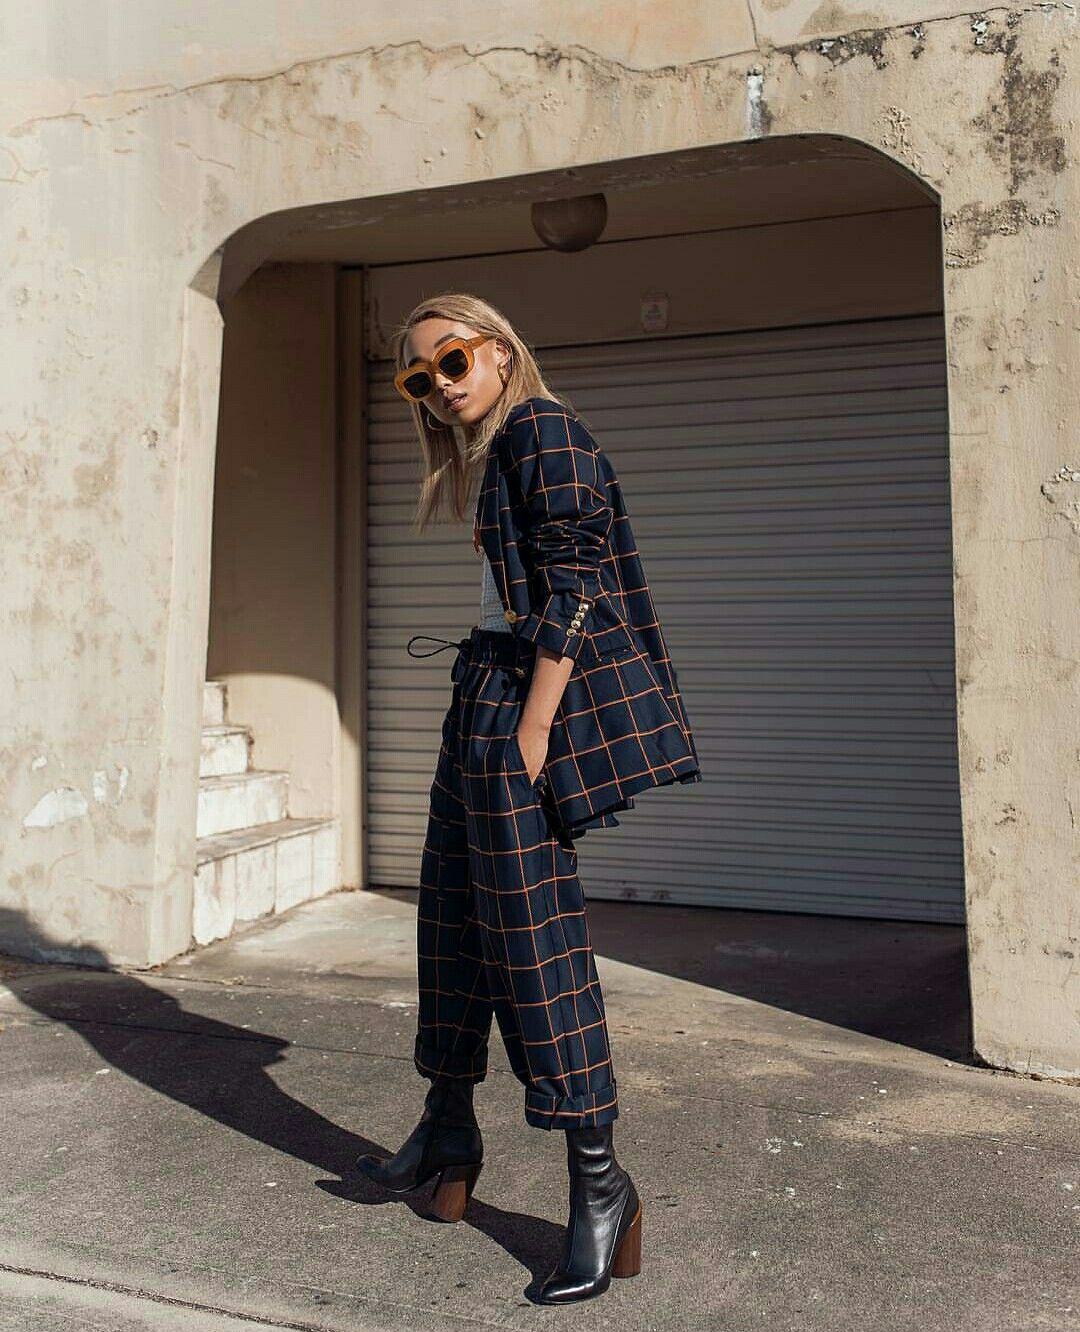 Men's outfits with flannel  Grid suit  the leaping poem  Pinterest